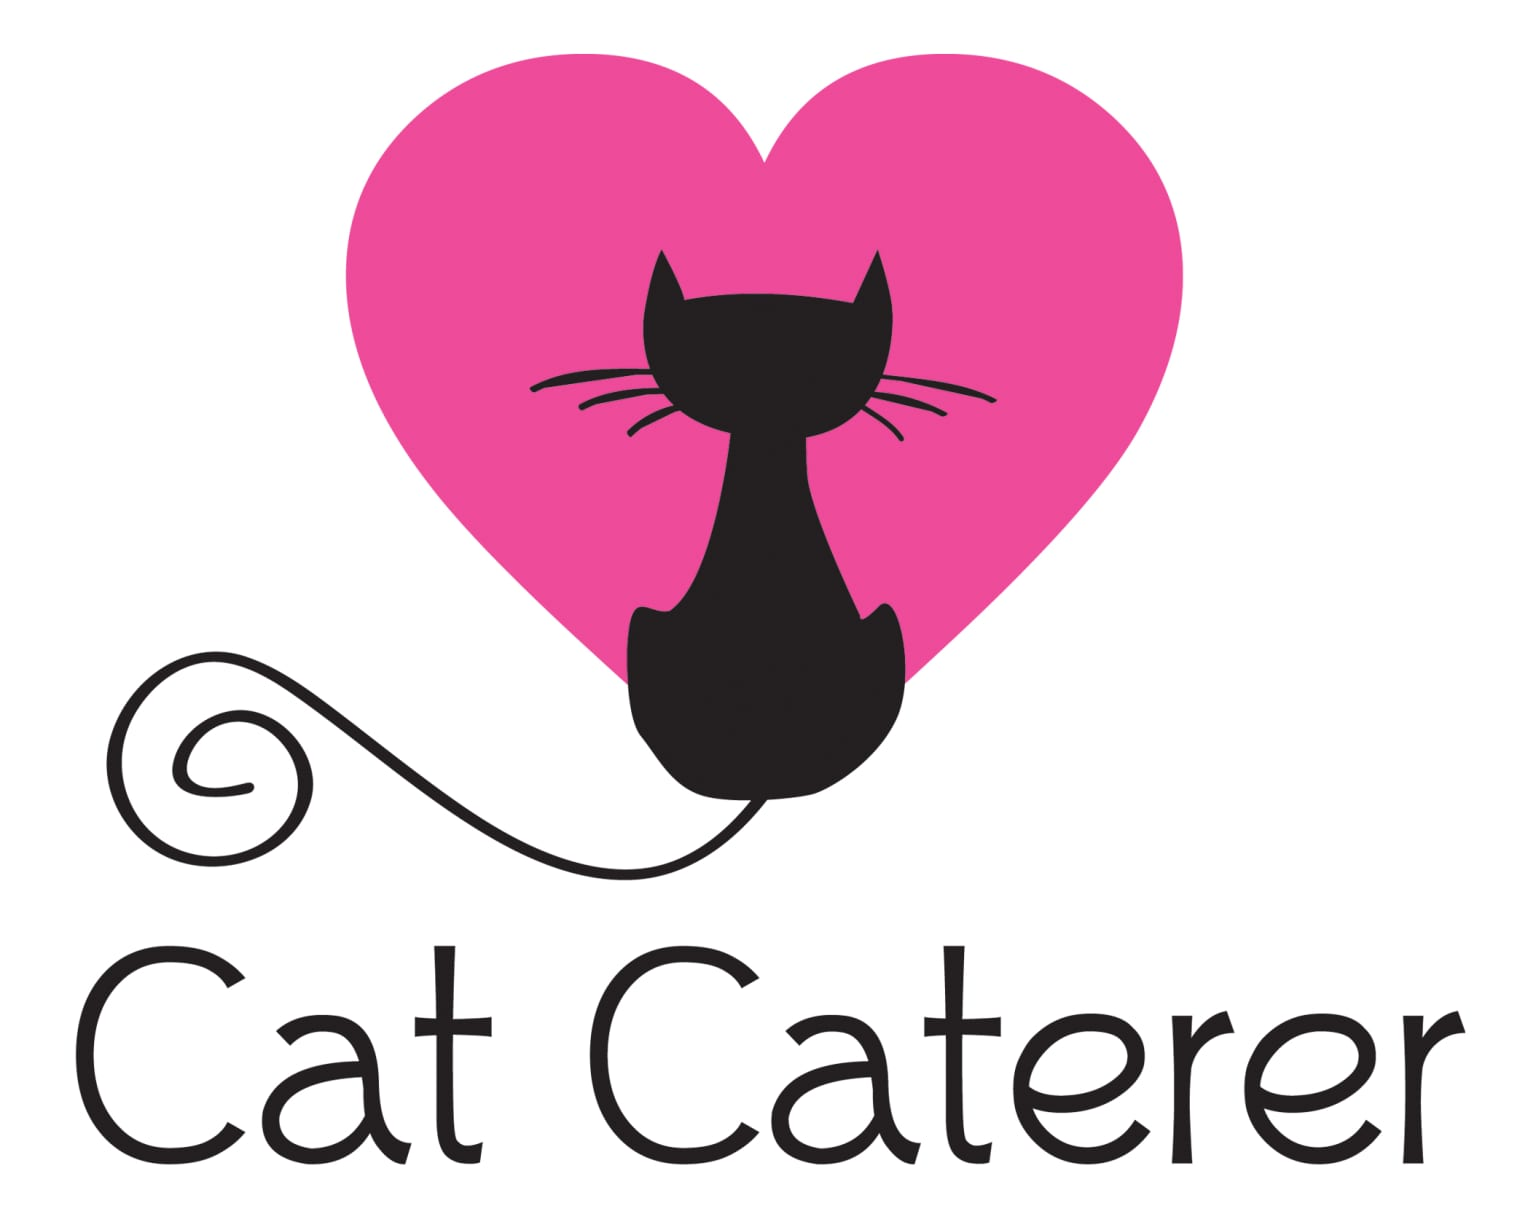 The Cat Caterer